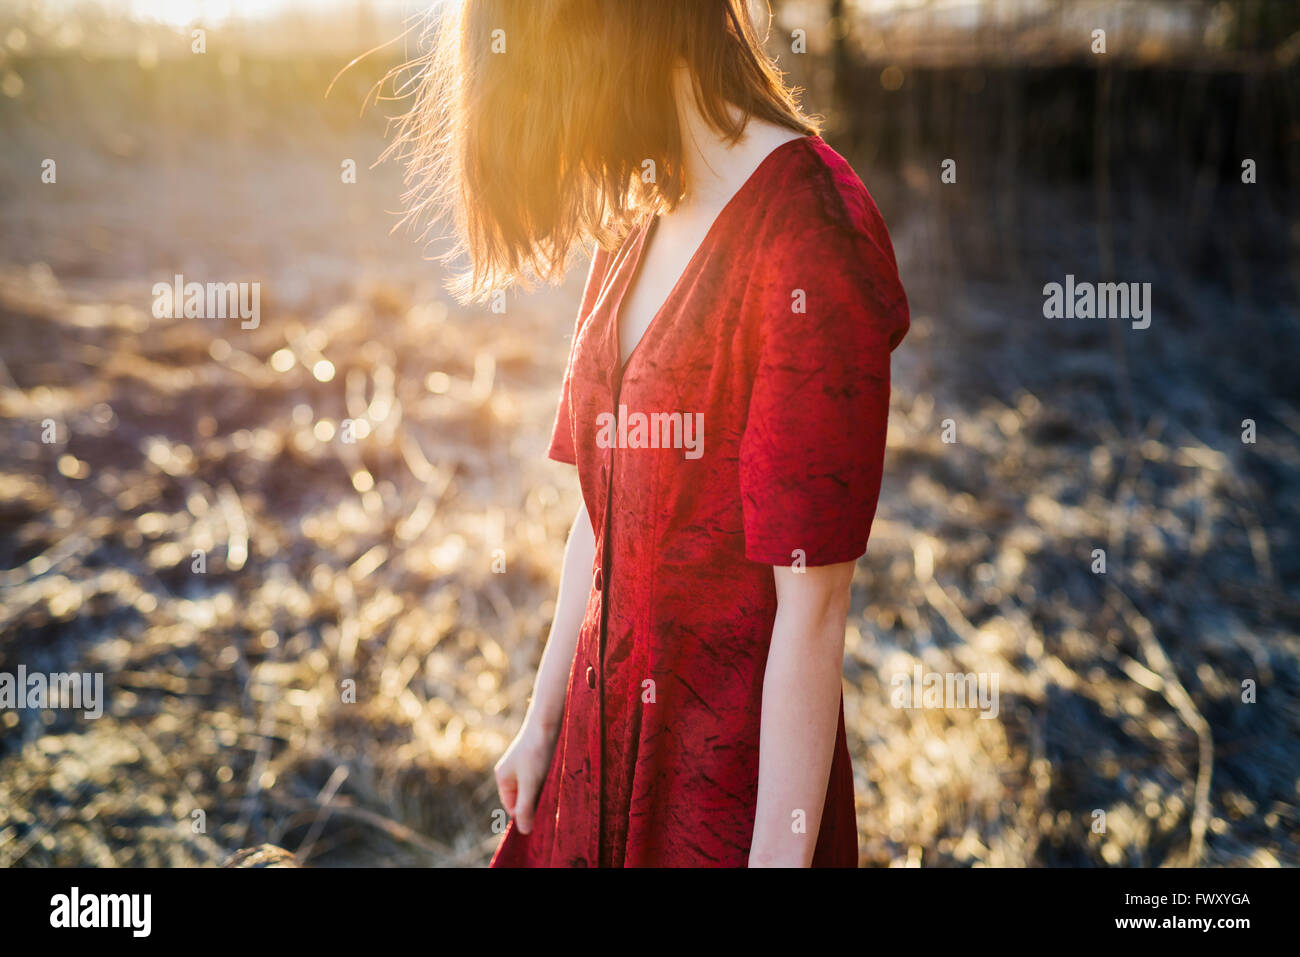 Finland, Varsinais-Suomi, Young red hair woman in red dress standing in sunlight - Stock Image